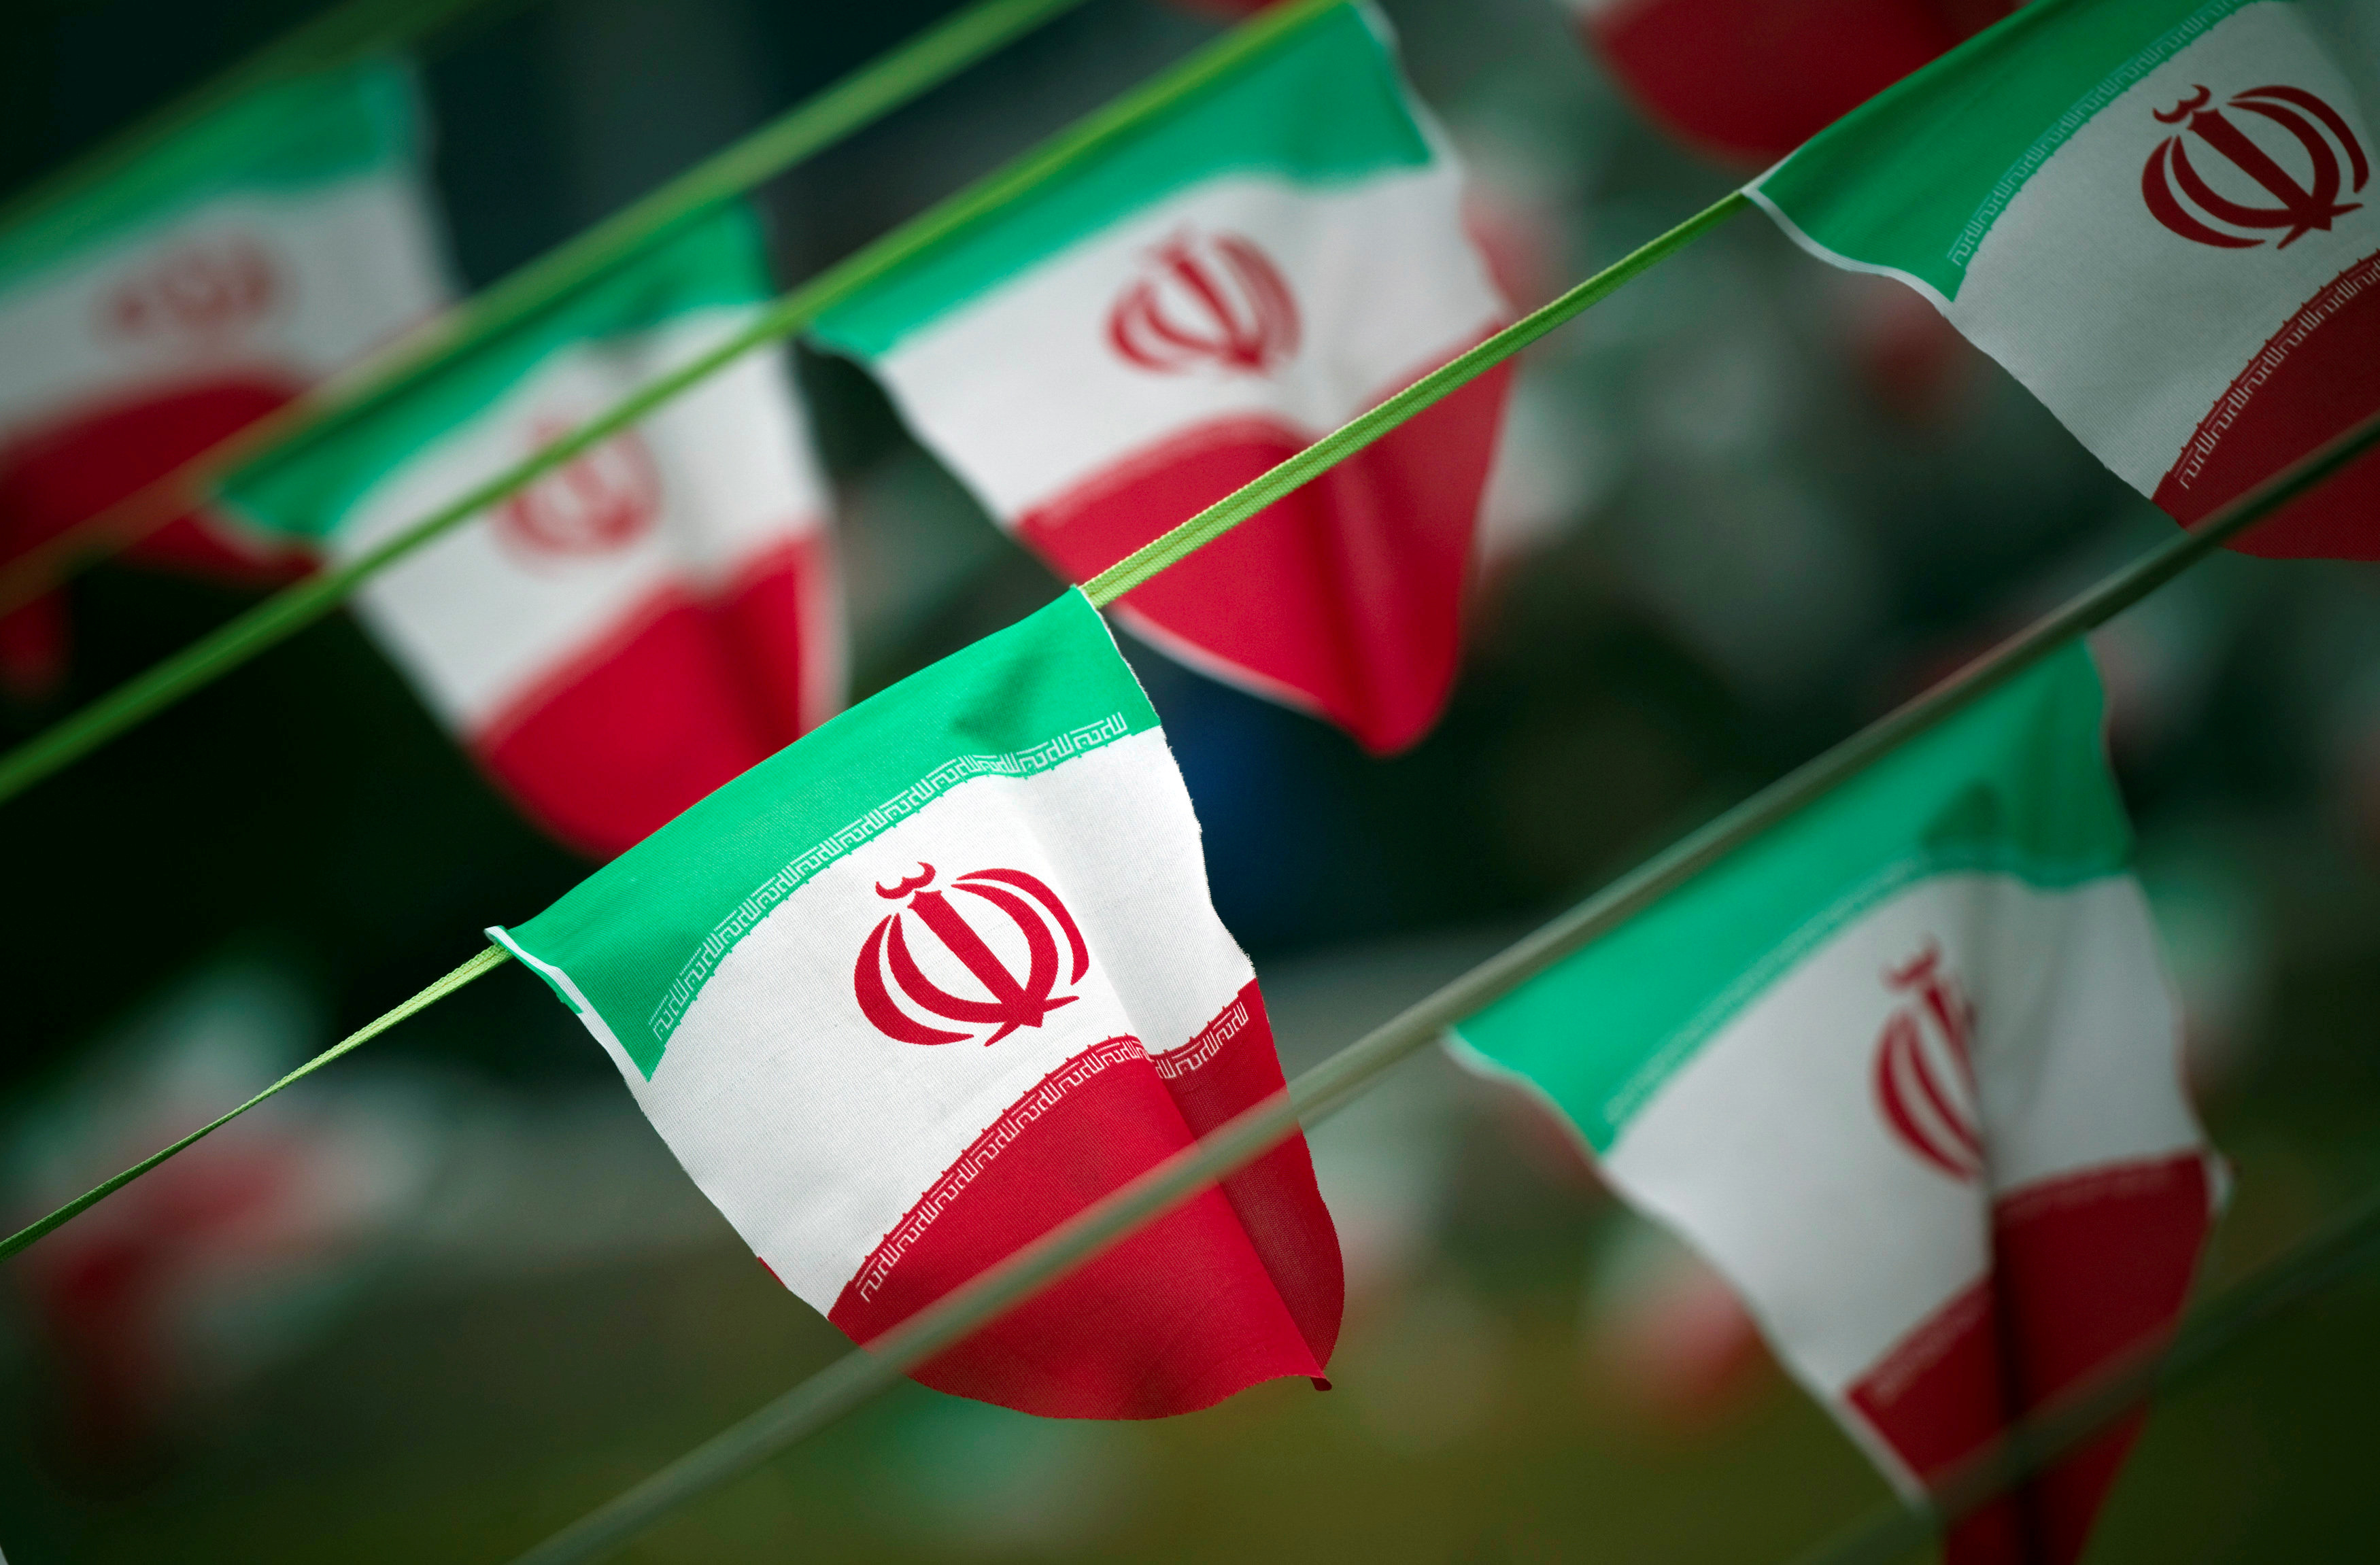 FILE PHOTO: Iran's national flags are seen on a square in Tehran February 10, 2012, a day before the anniversary of the Islamic Revolution. REUTERS/Morteza Nikoubazl/File Photo - D1BEUKIDPUAA